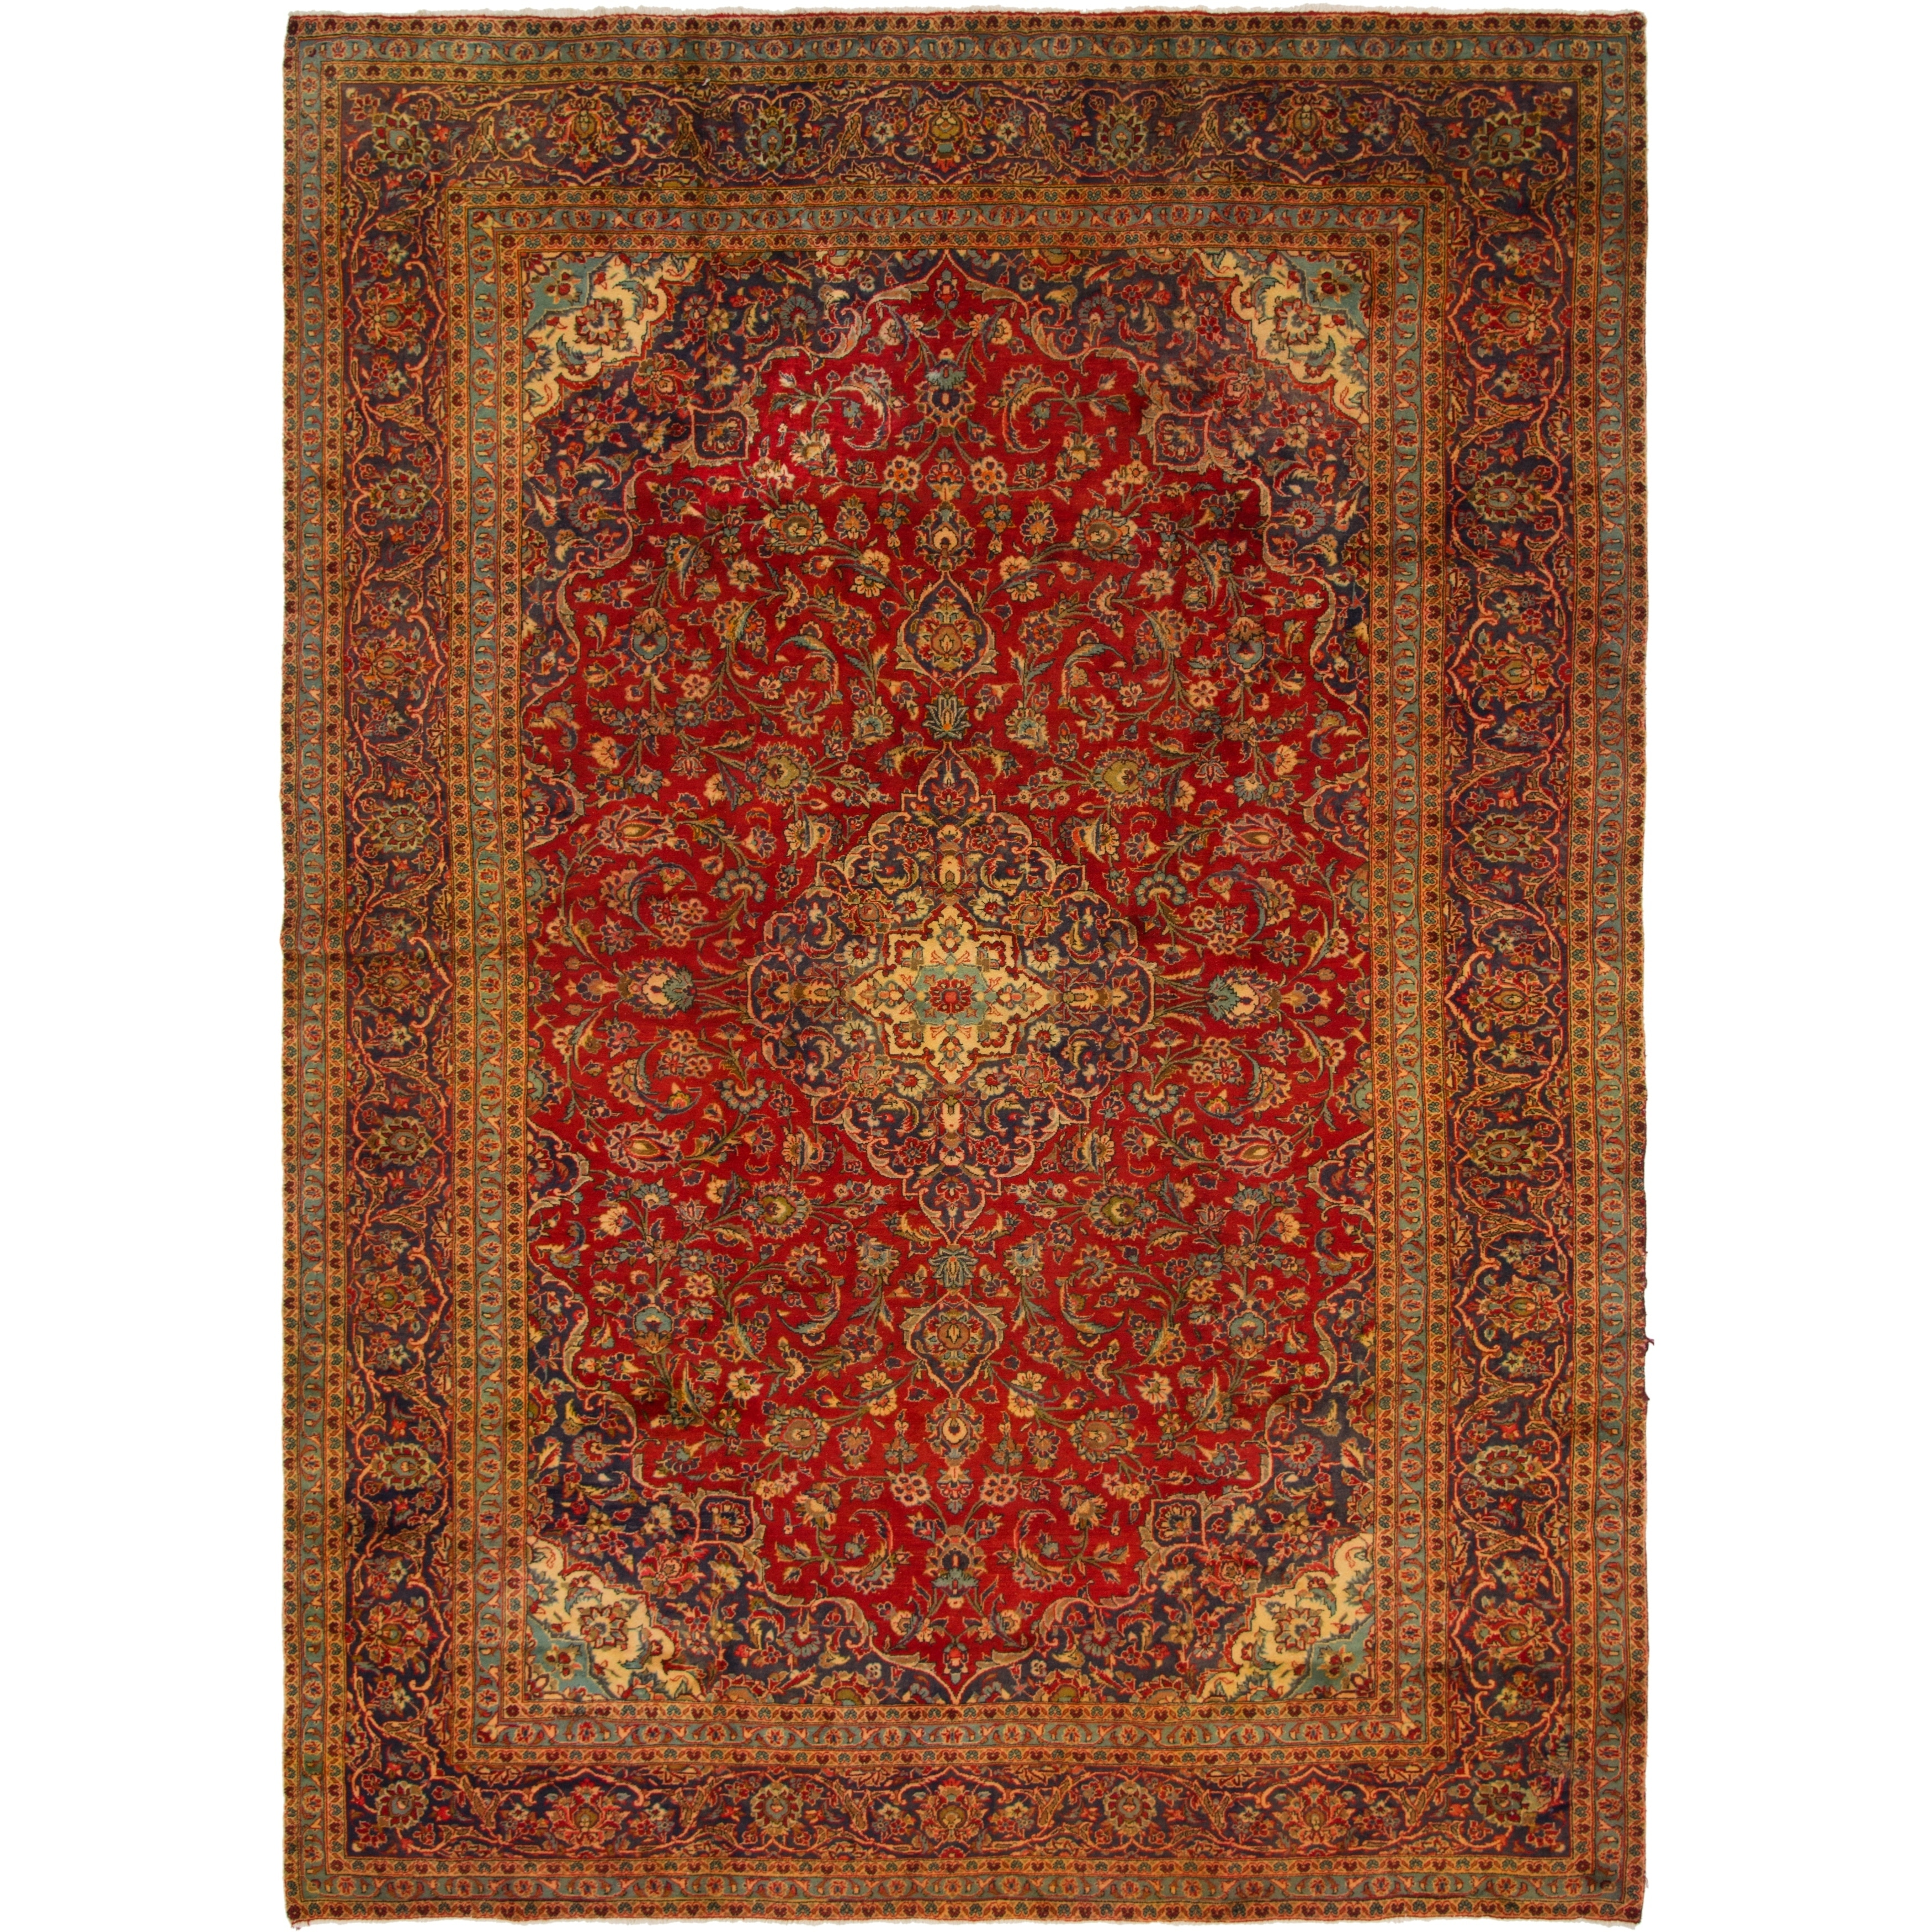 Hand Knotted Kashan Semi Antique Wool Area Rug - 9 7 x 13 5 (Red - 9 7 x 13 5)